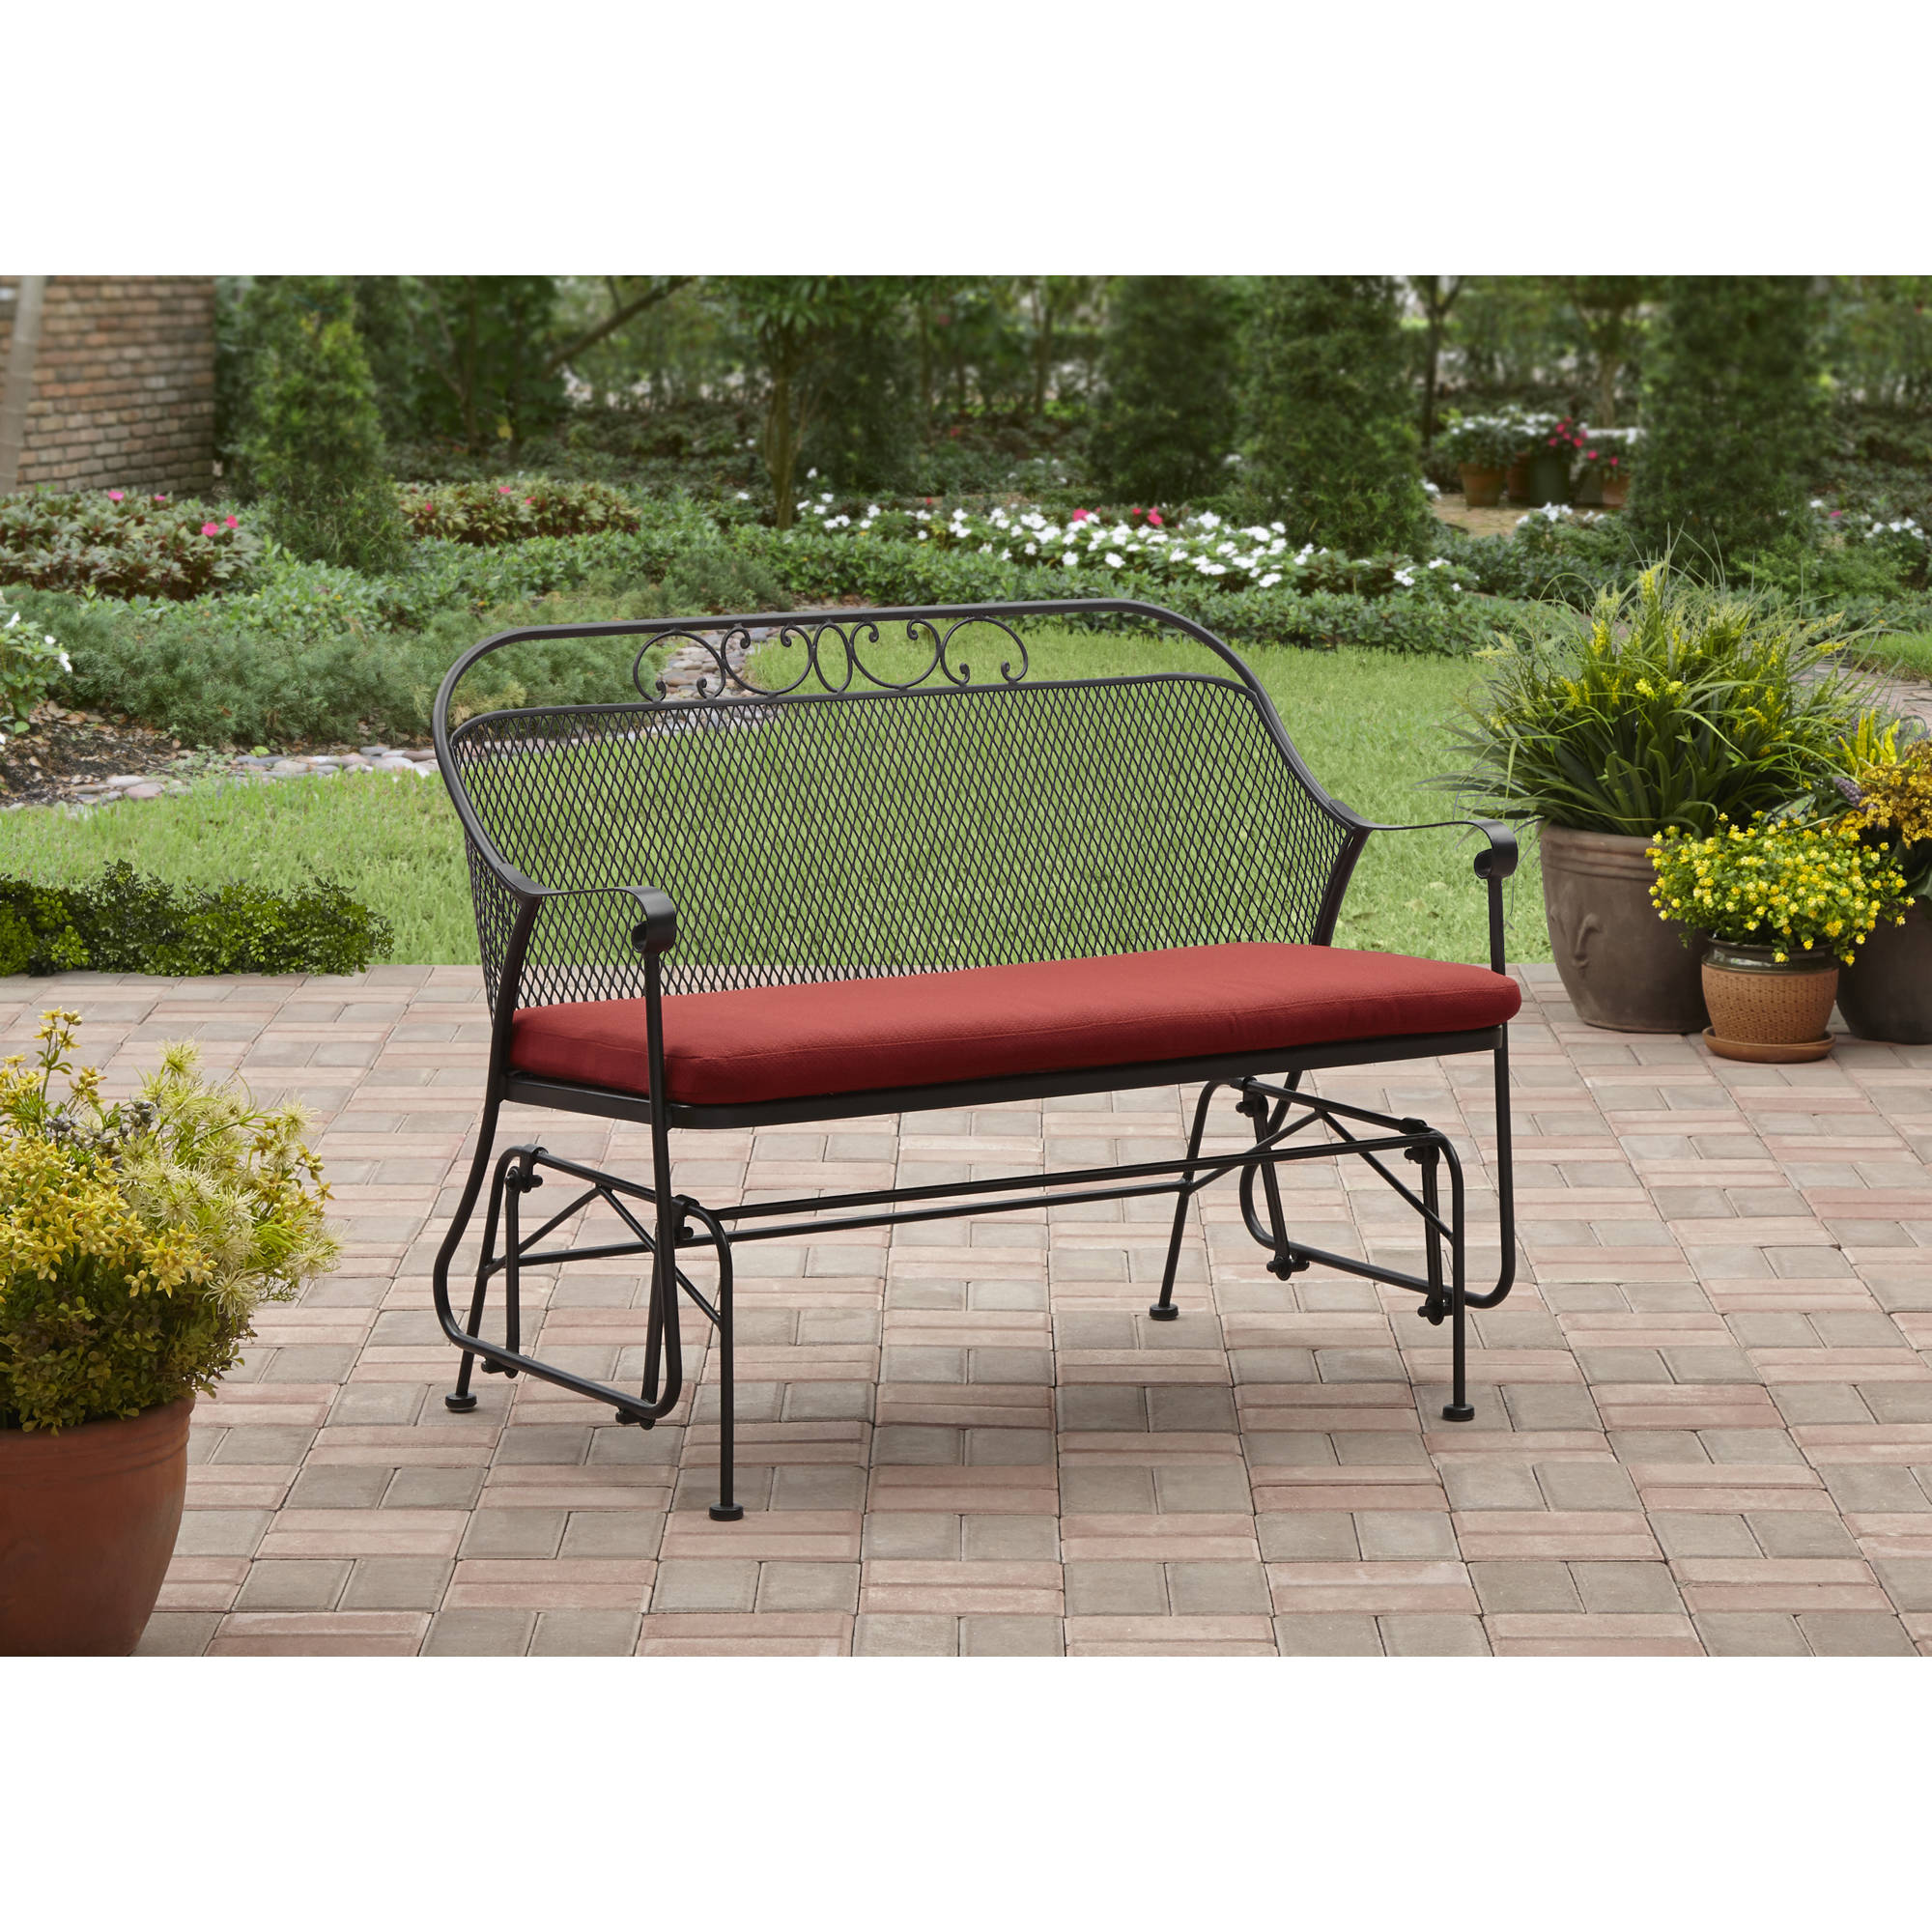 Great Better Homes And Gardens Clayton Court Outdoor Glider, Red